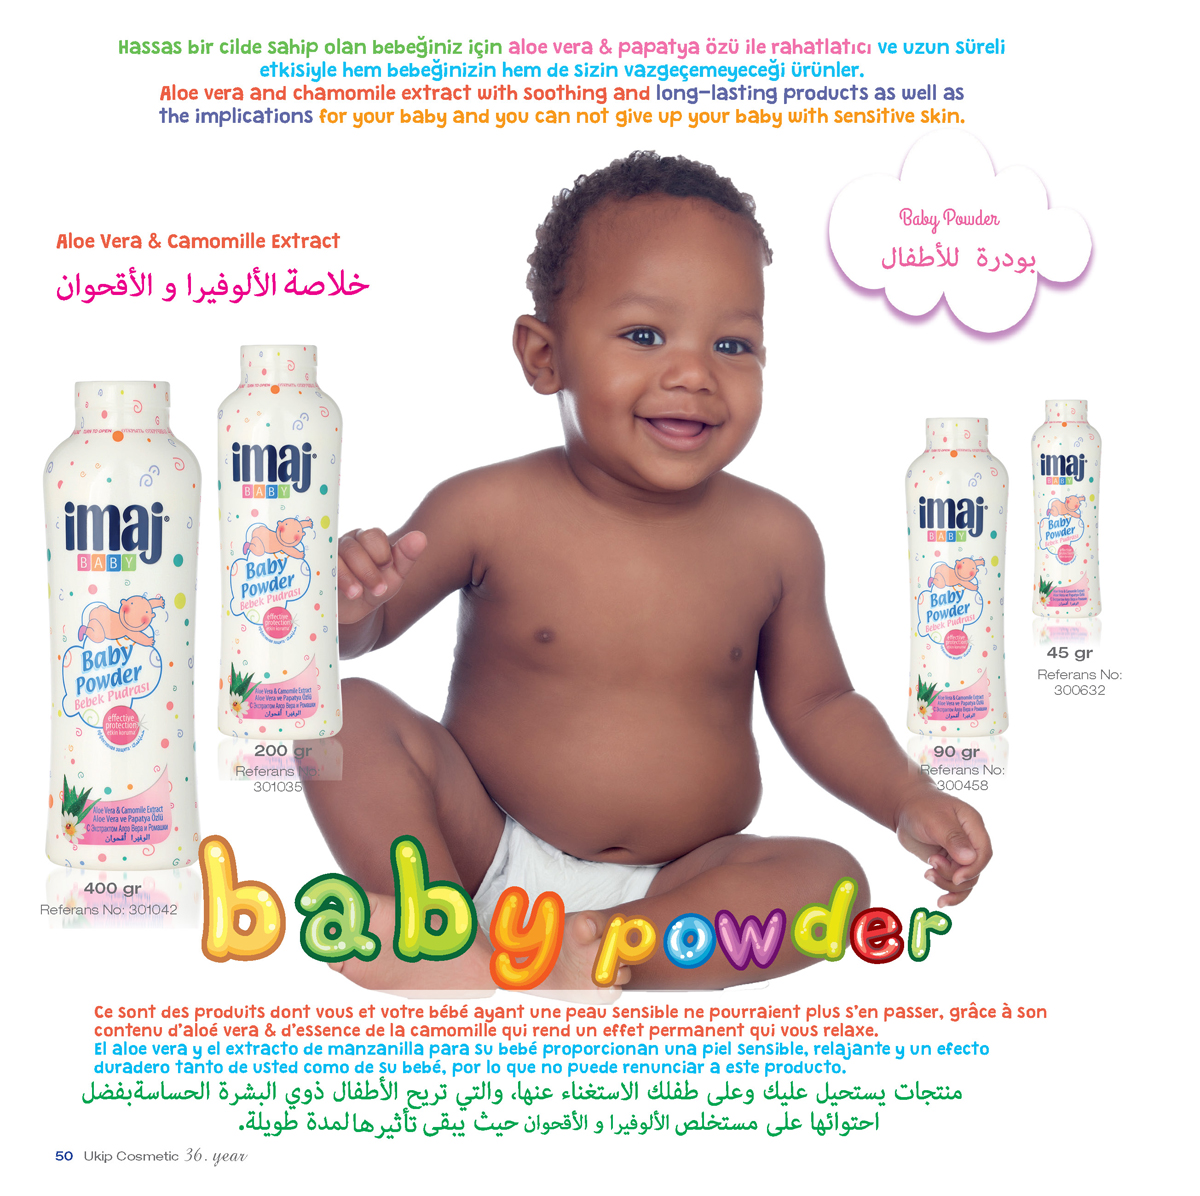 Imaj baby powder